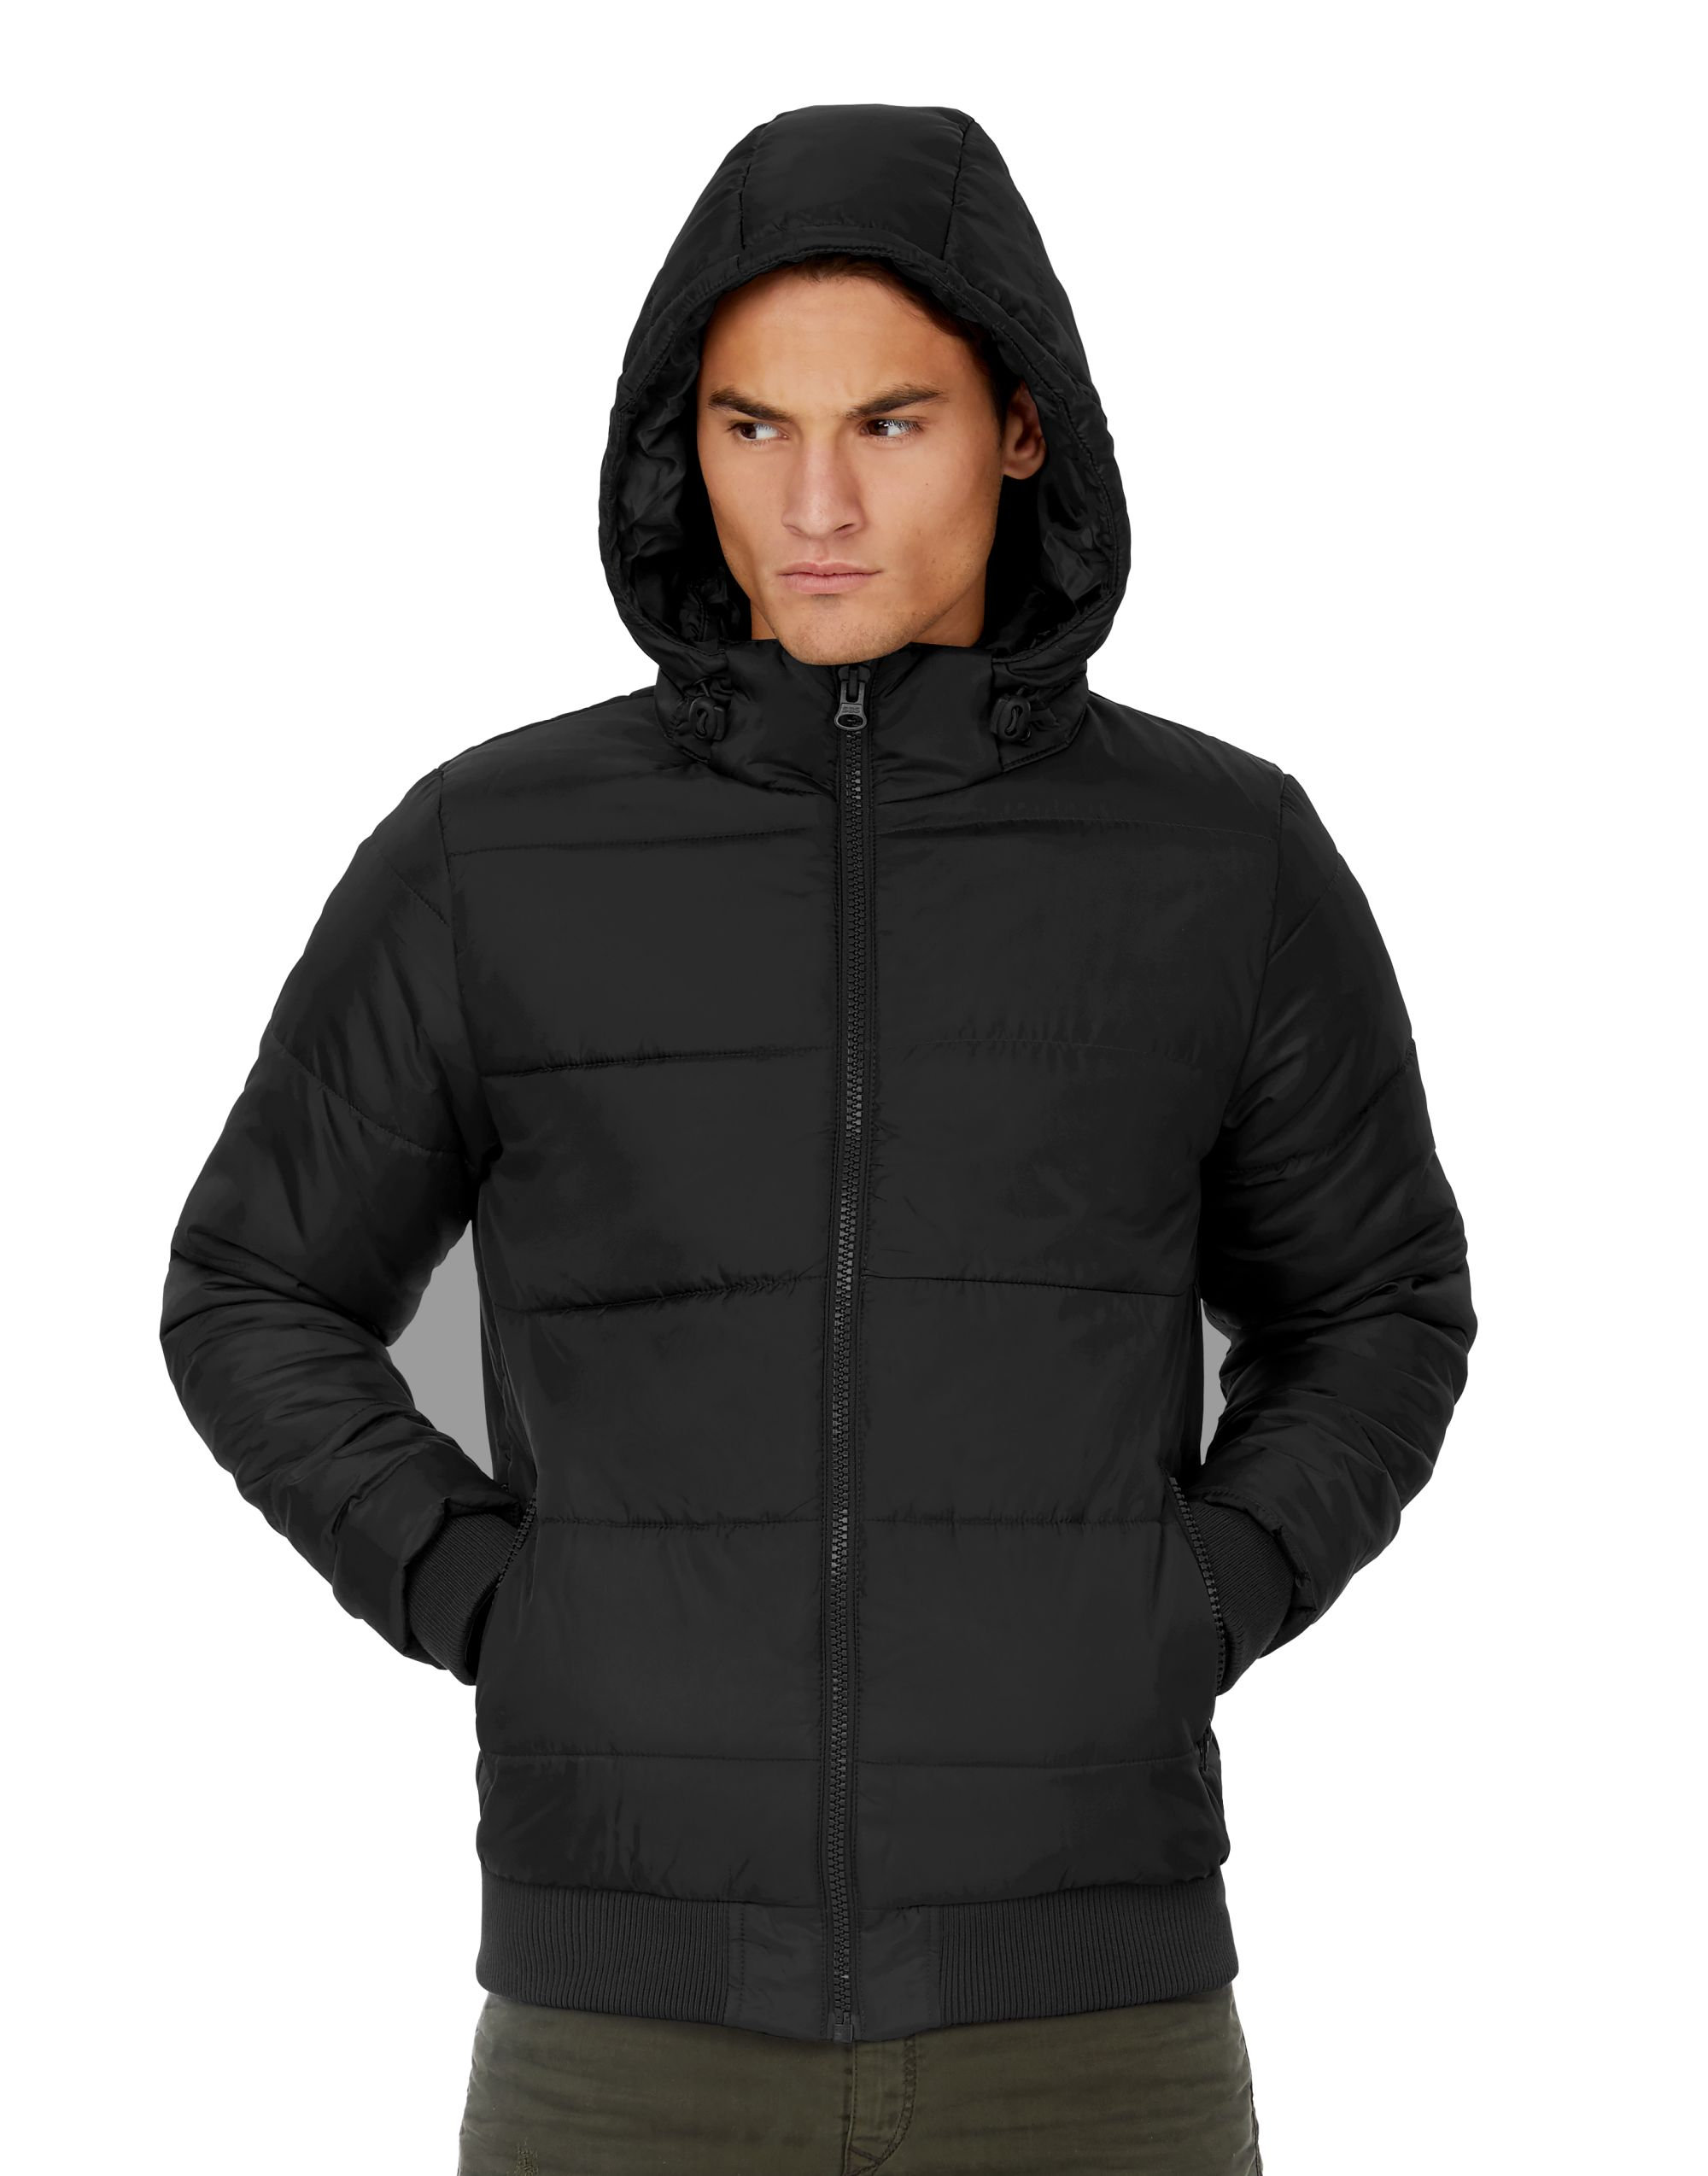 B&C Men's Superhood Jacket